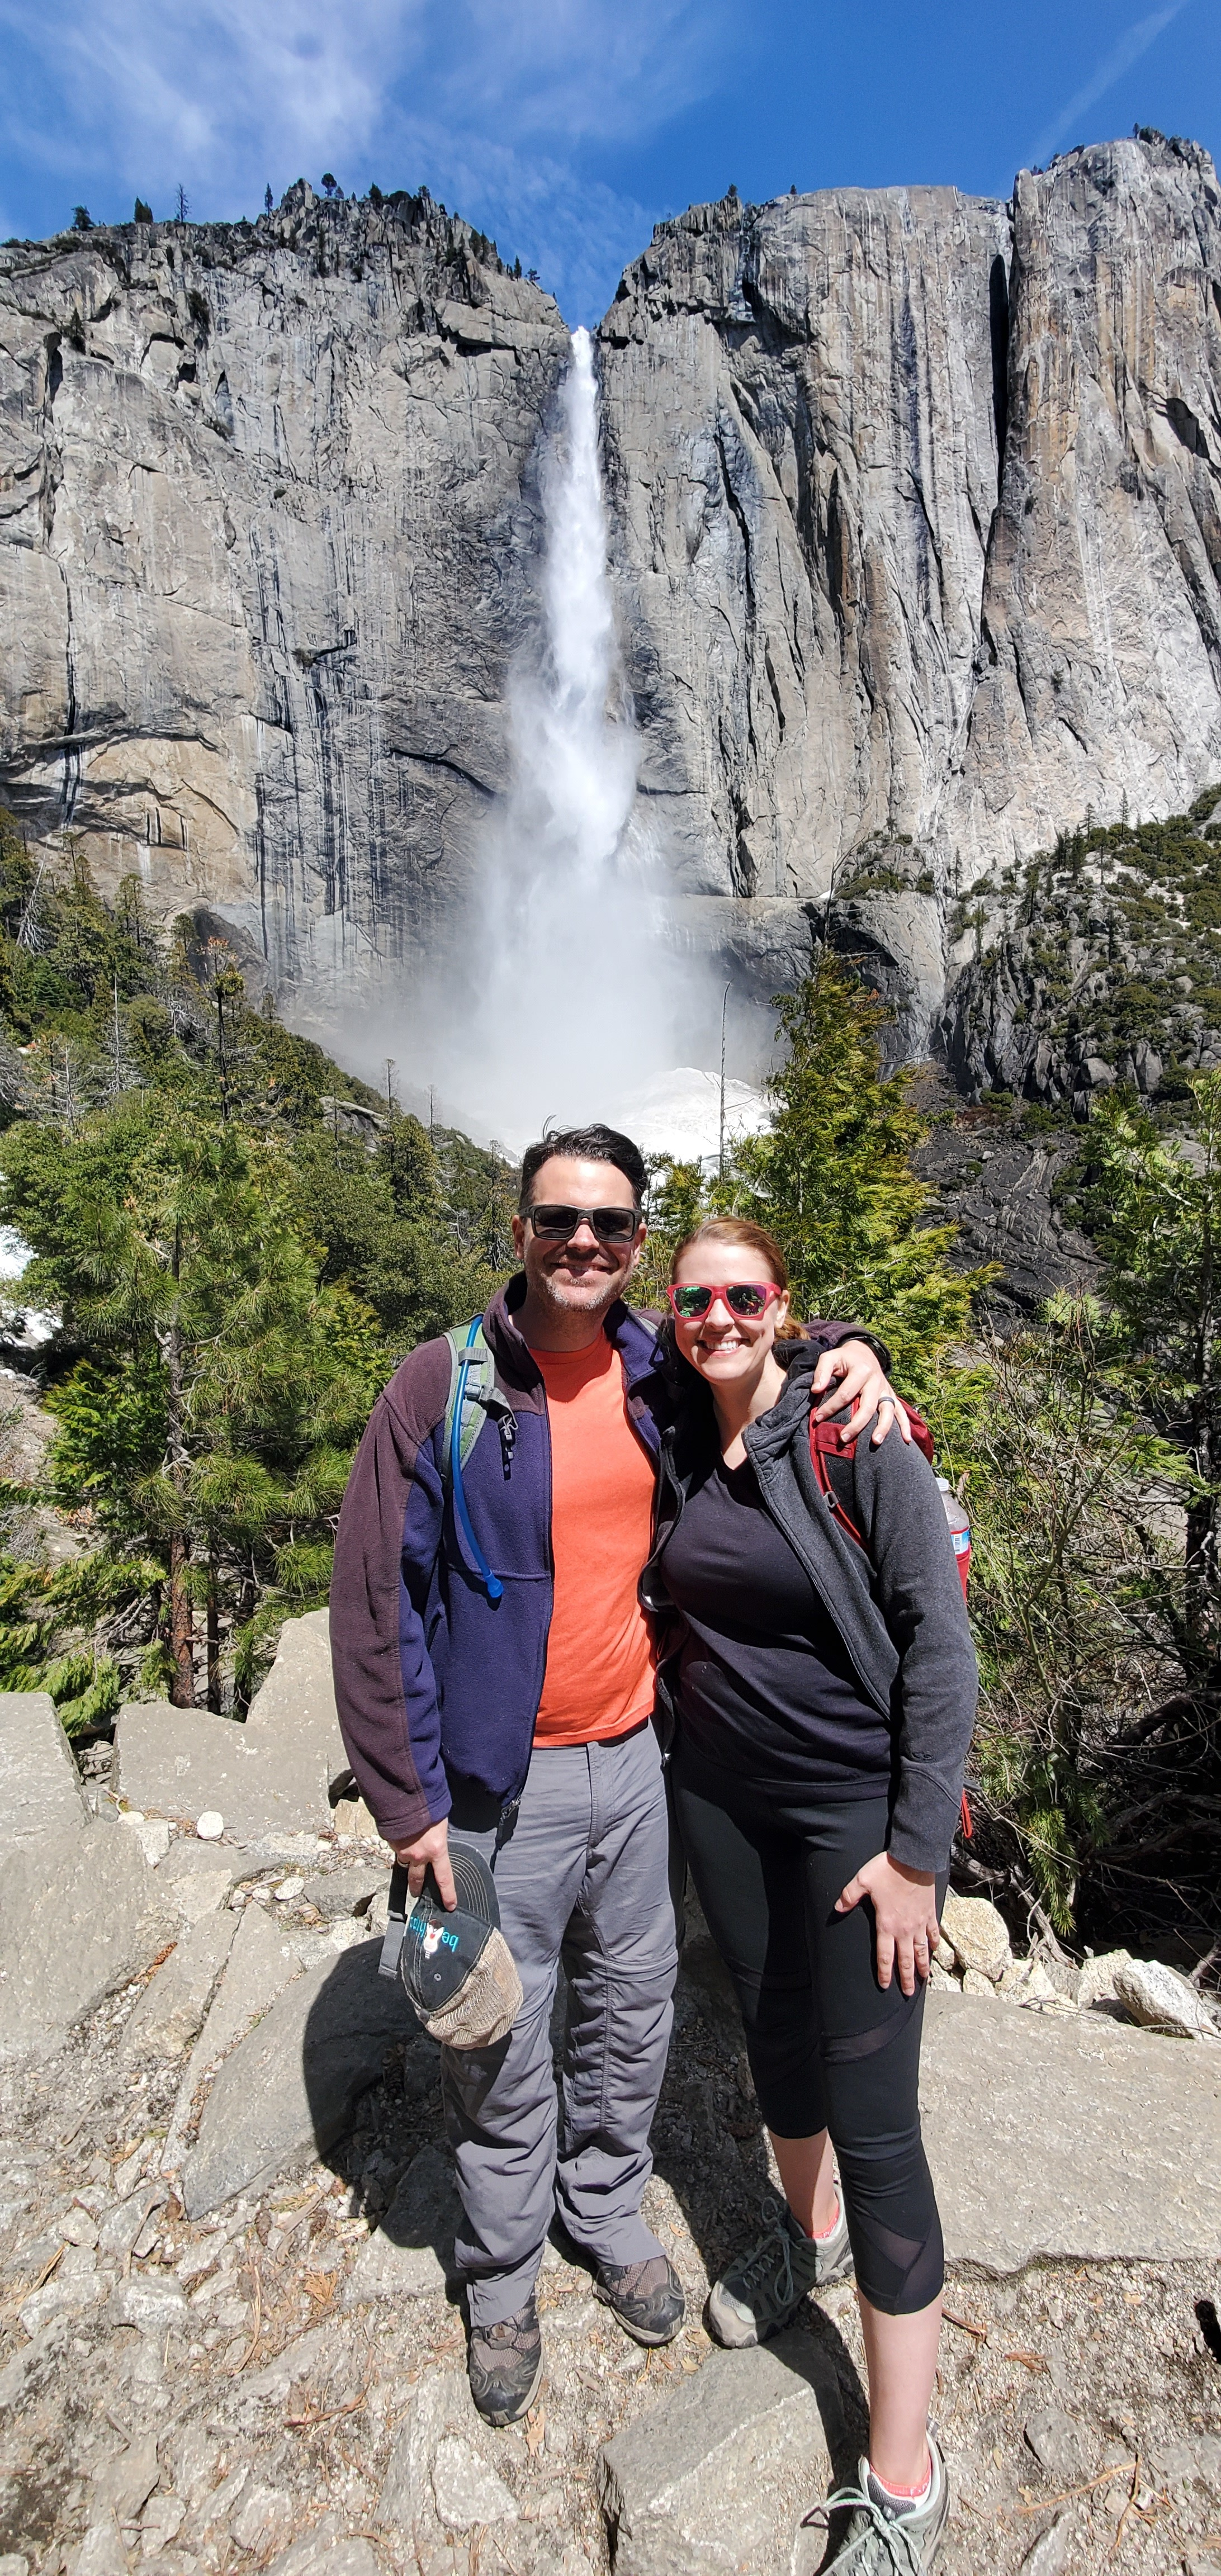 Dr. Wetegrove-Romine arriving at the falls in Yosemite.